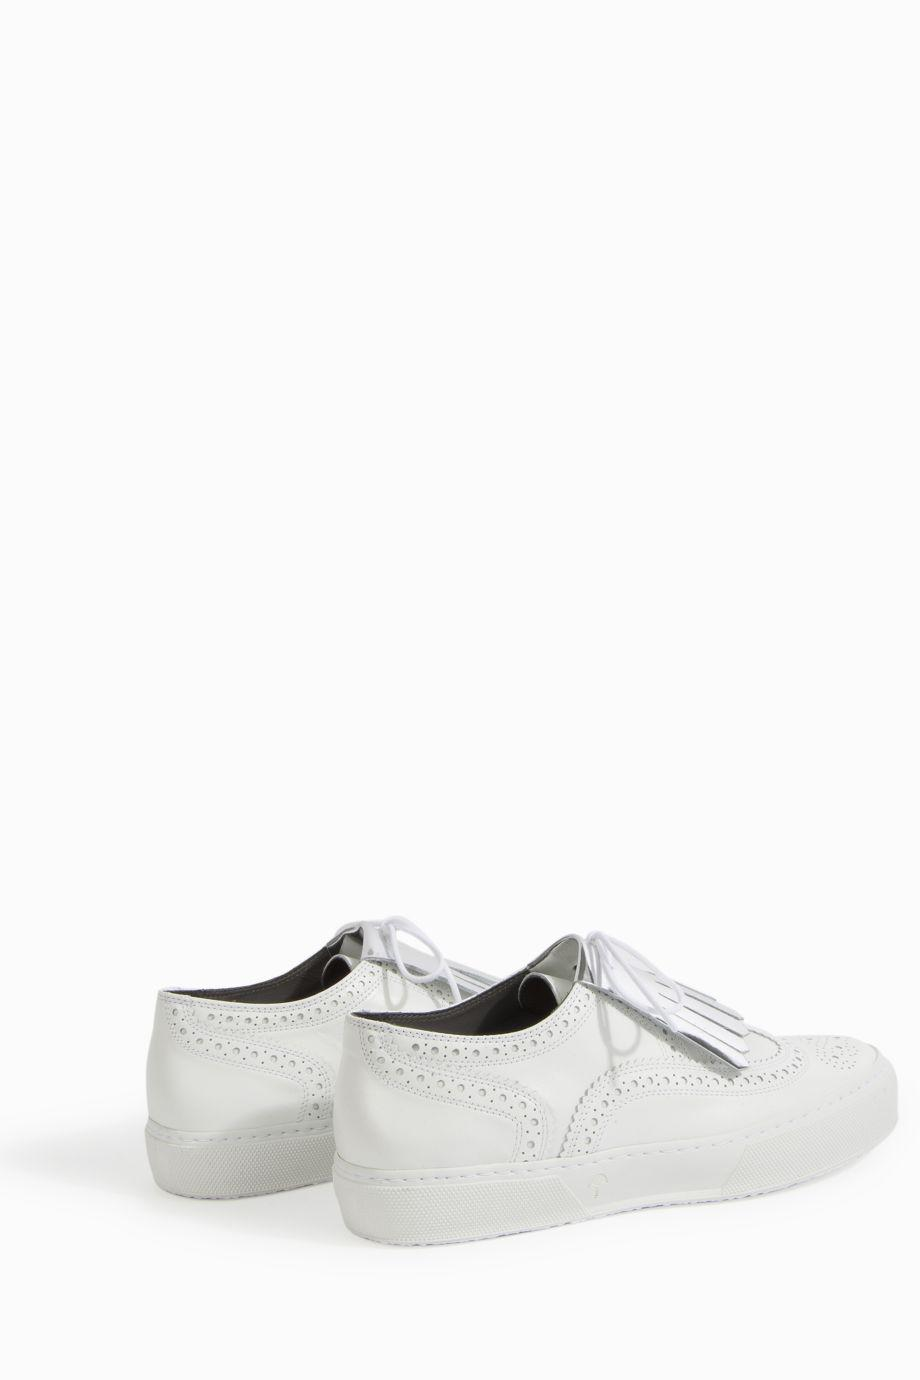 Robert Clergerie Tolka Trainers